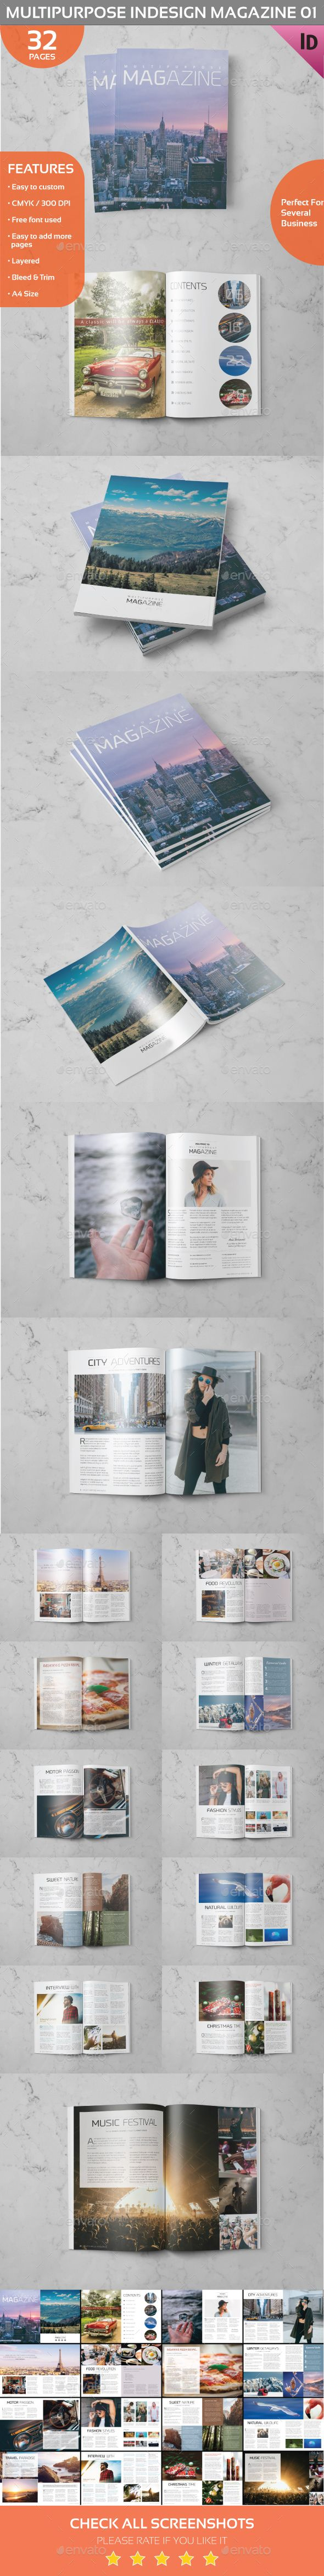 Multipurpose Magazine Template InDesign INDD - 32 Pages, A4 and US Letter Size